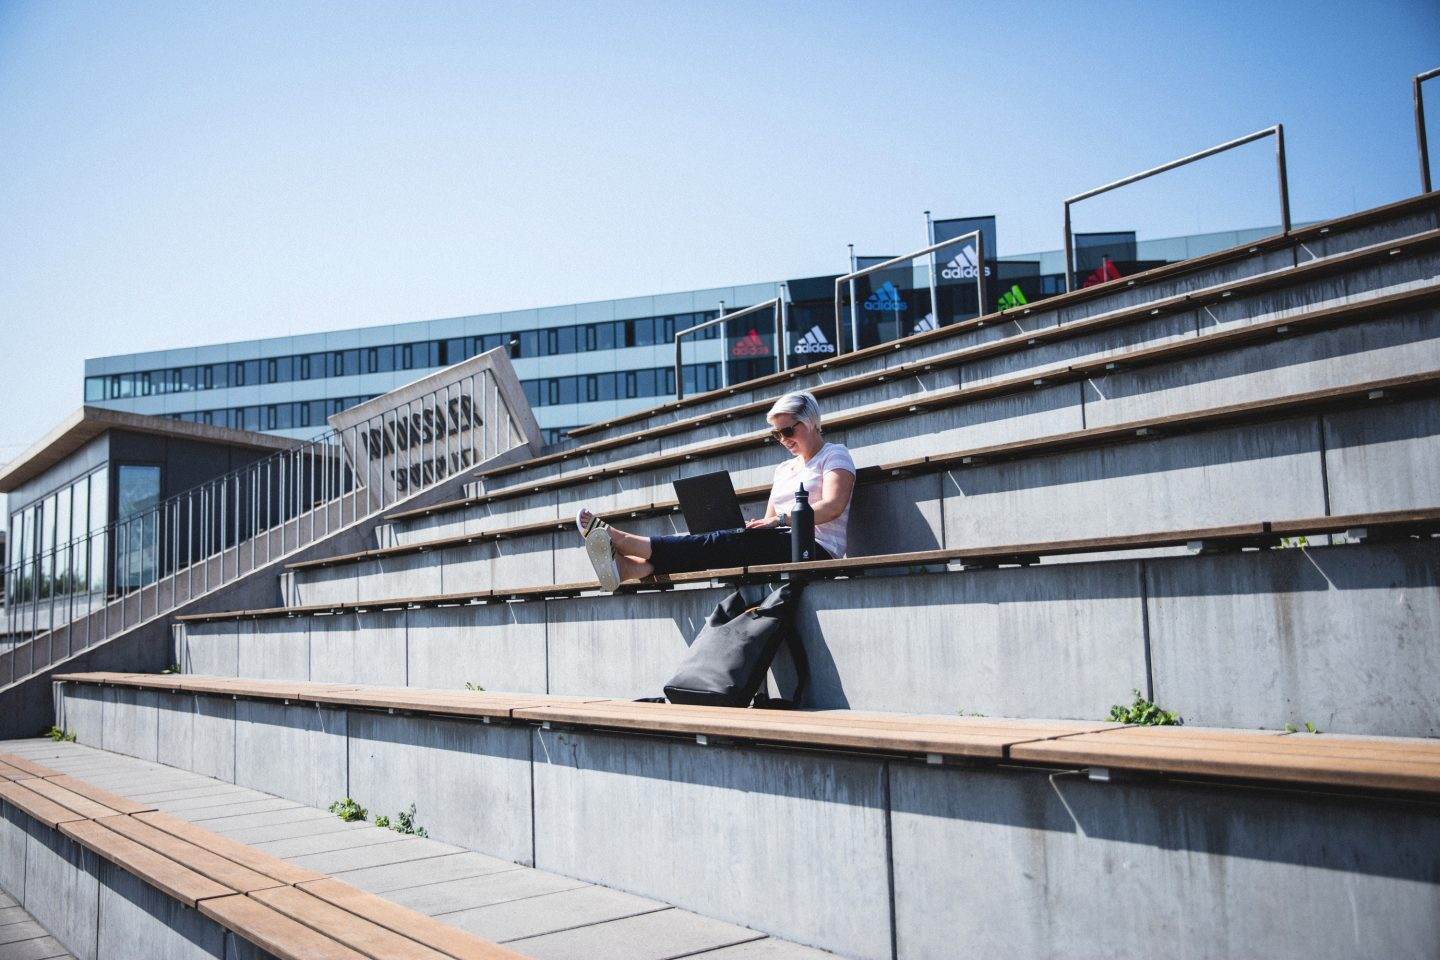 Girl working in the stadium stands with laptop, Work,Outside,Stadium, Stands, adidas, GamePlanA